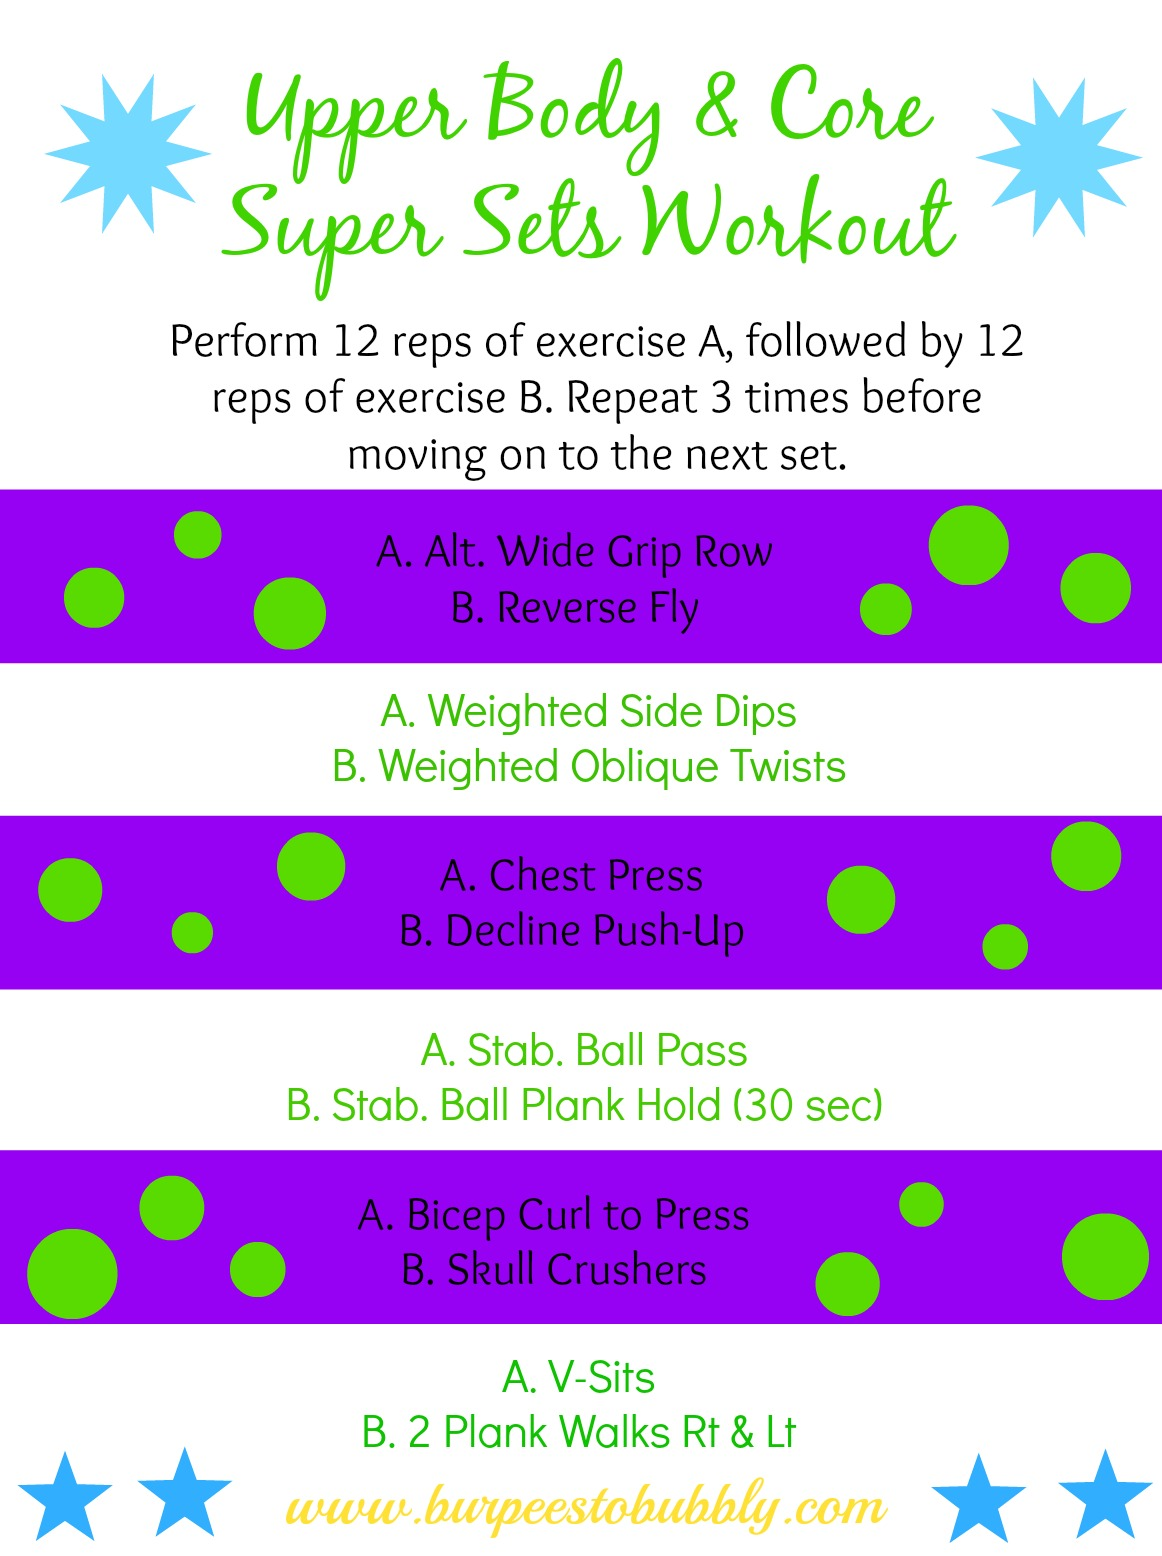 Supersets Burpees To Bubbly More Circuit Workouts Cardio Workout Gym Wednesday 30 Minute Upper Body Core Super Sets